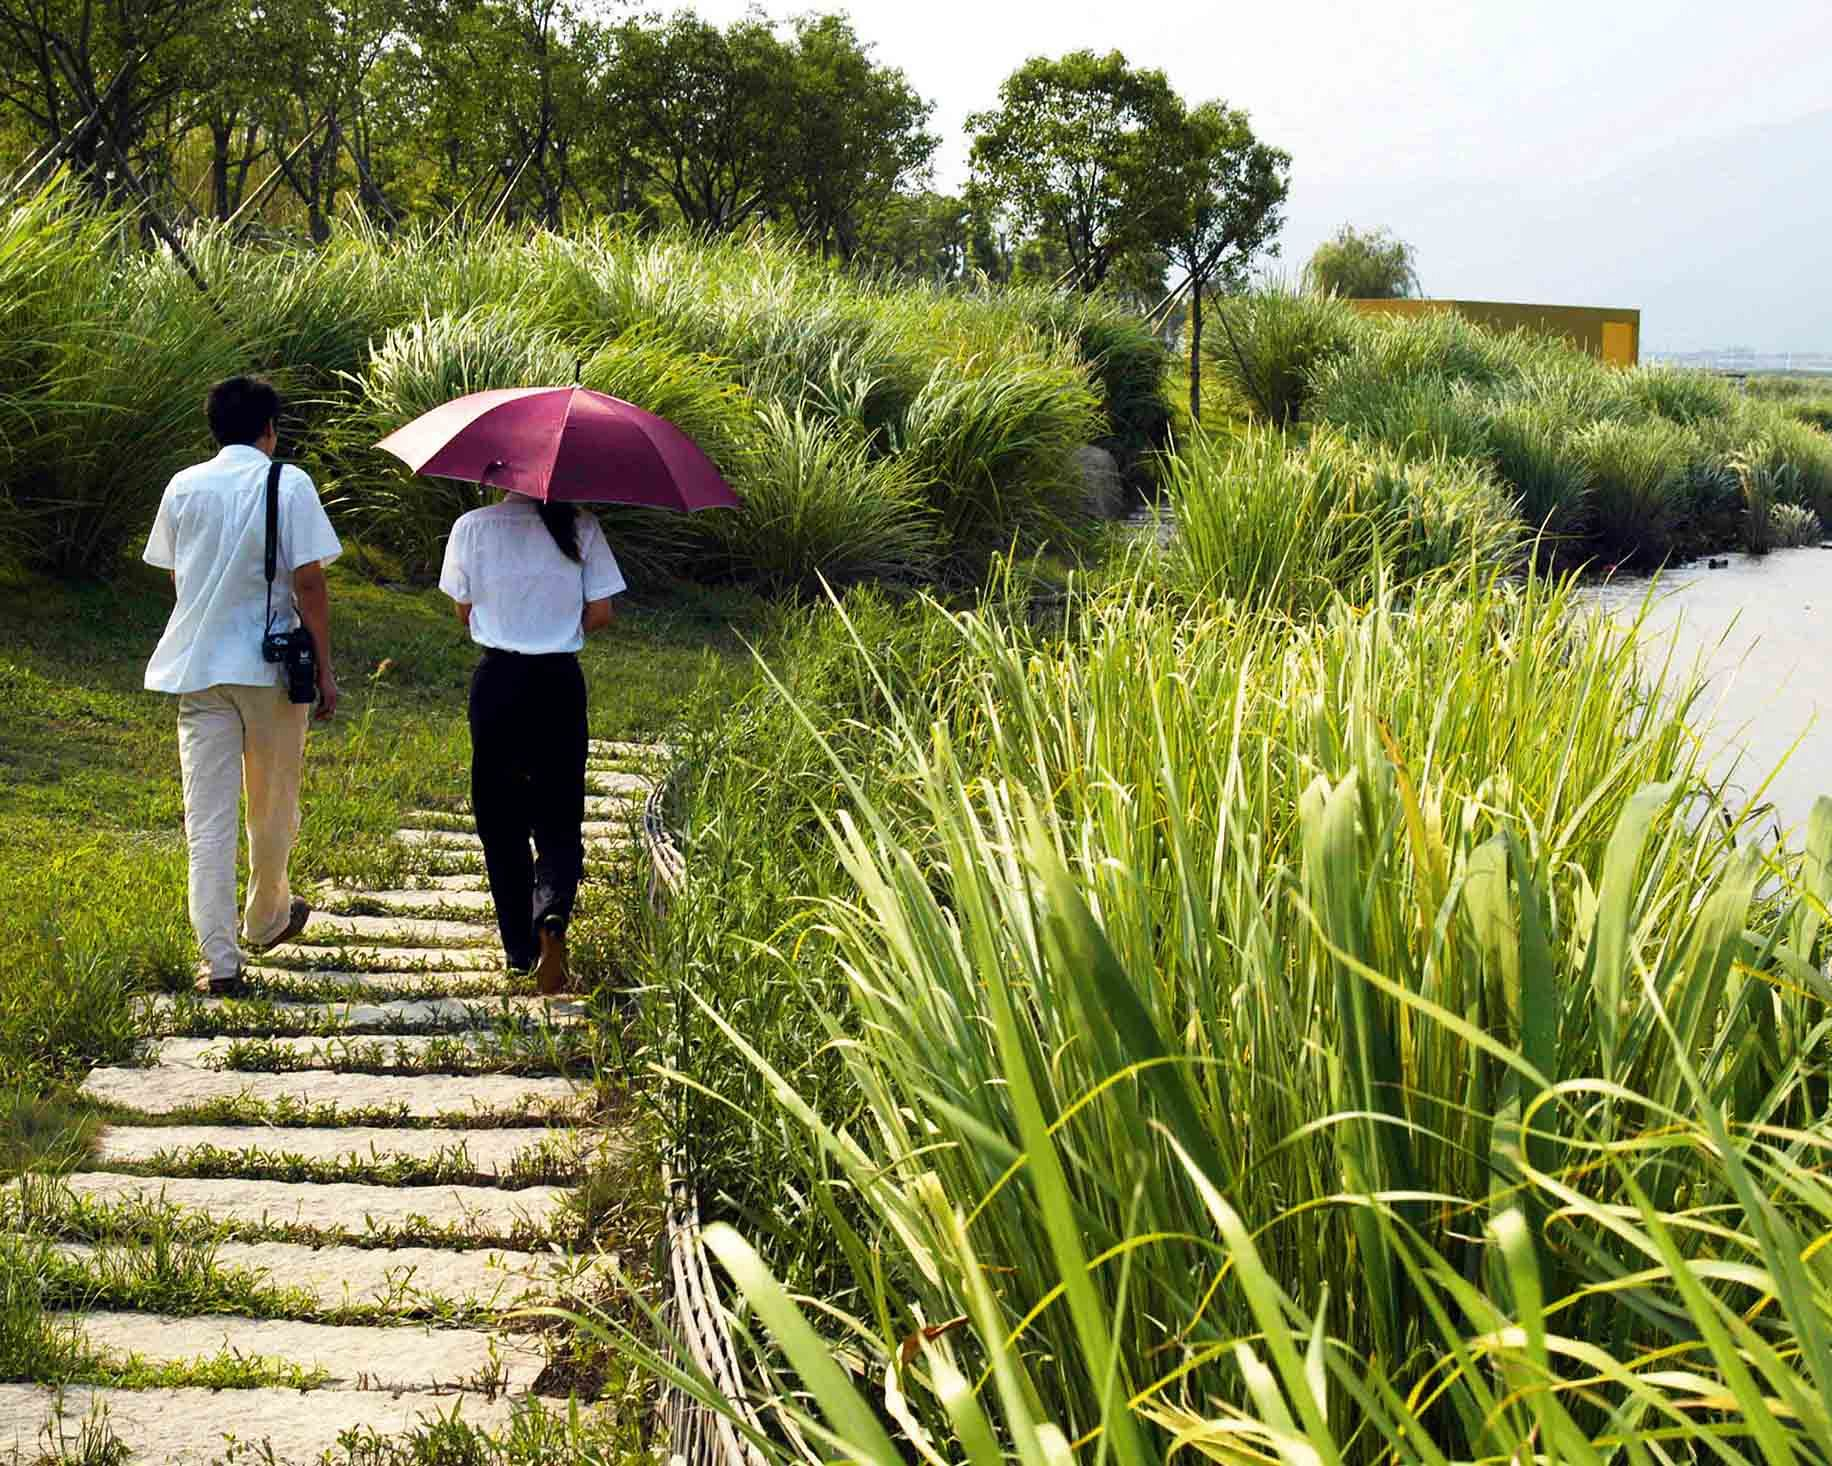 Yongning River Park, Taizhou City, Zhejiang, 2004. A combination of natural and man-made elements provides an alternative storm water management solution.